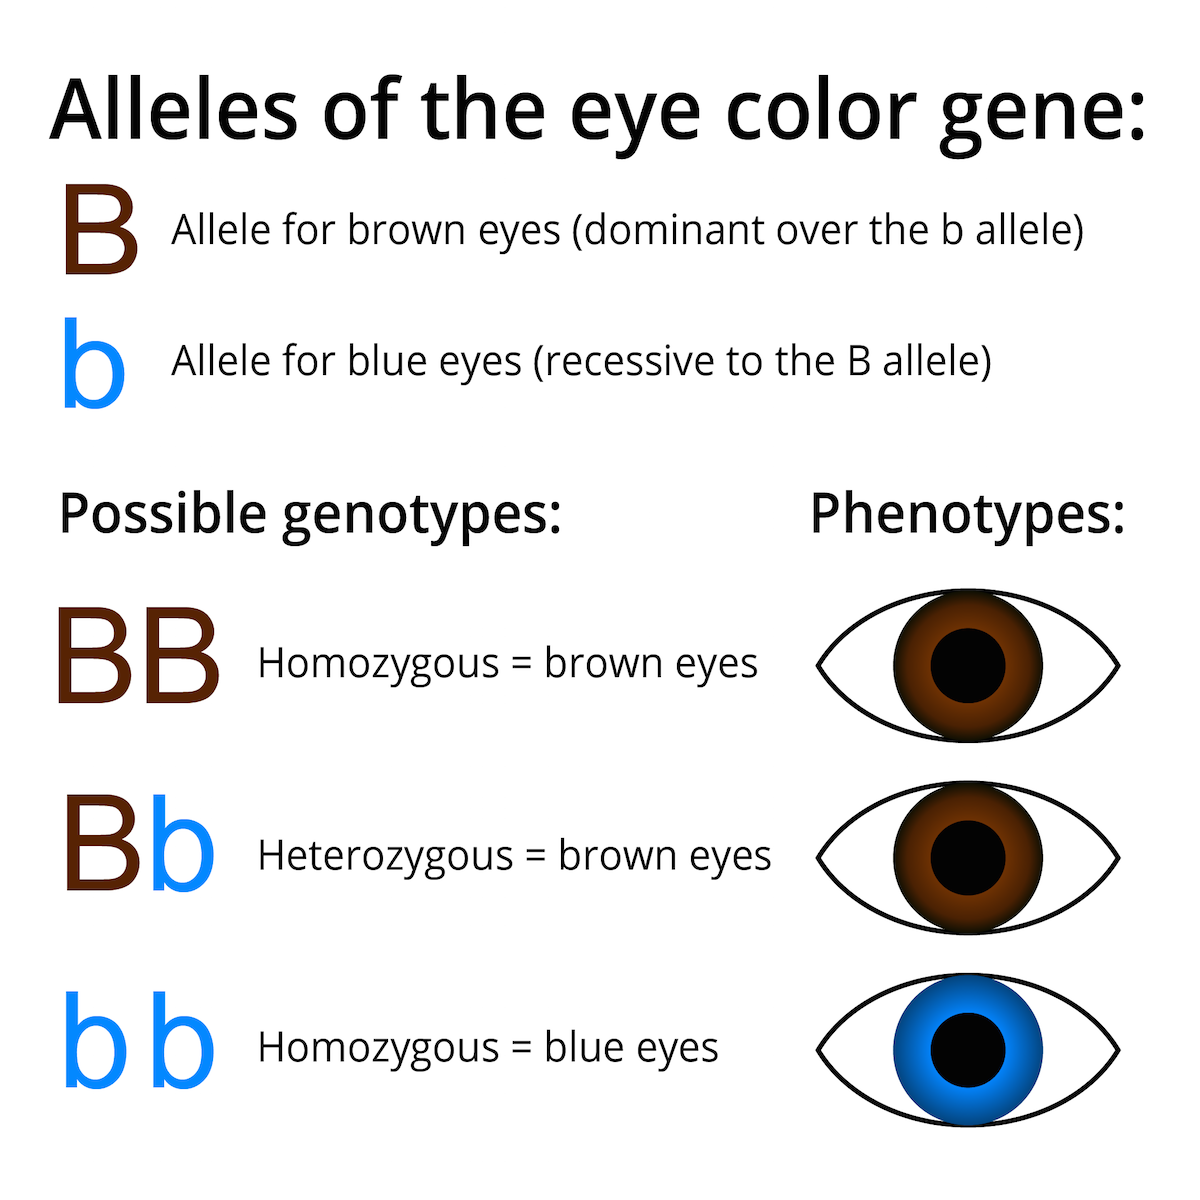 Alleles genotypes phenotypes